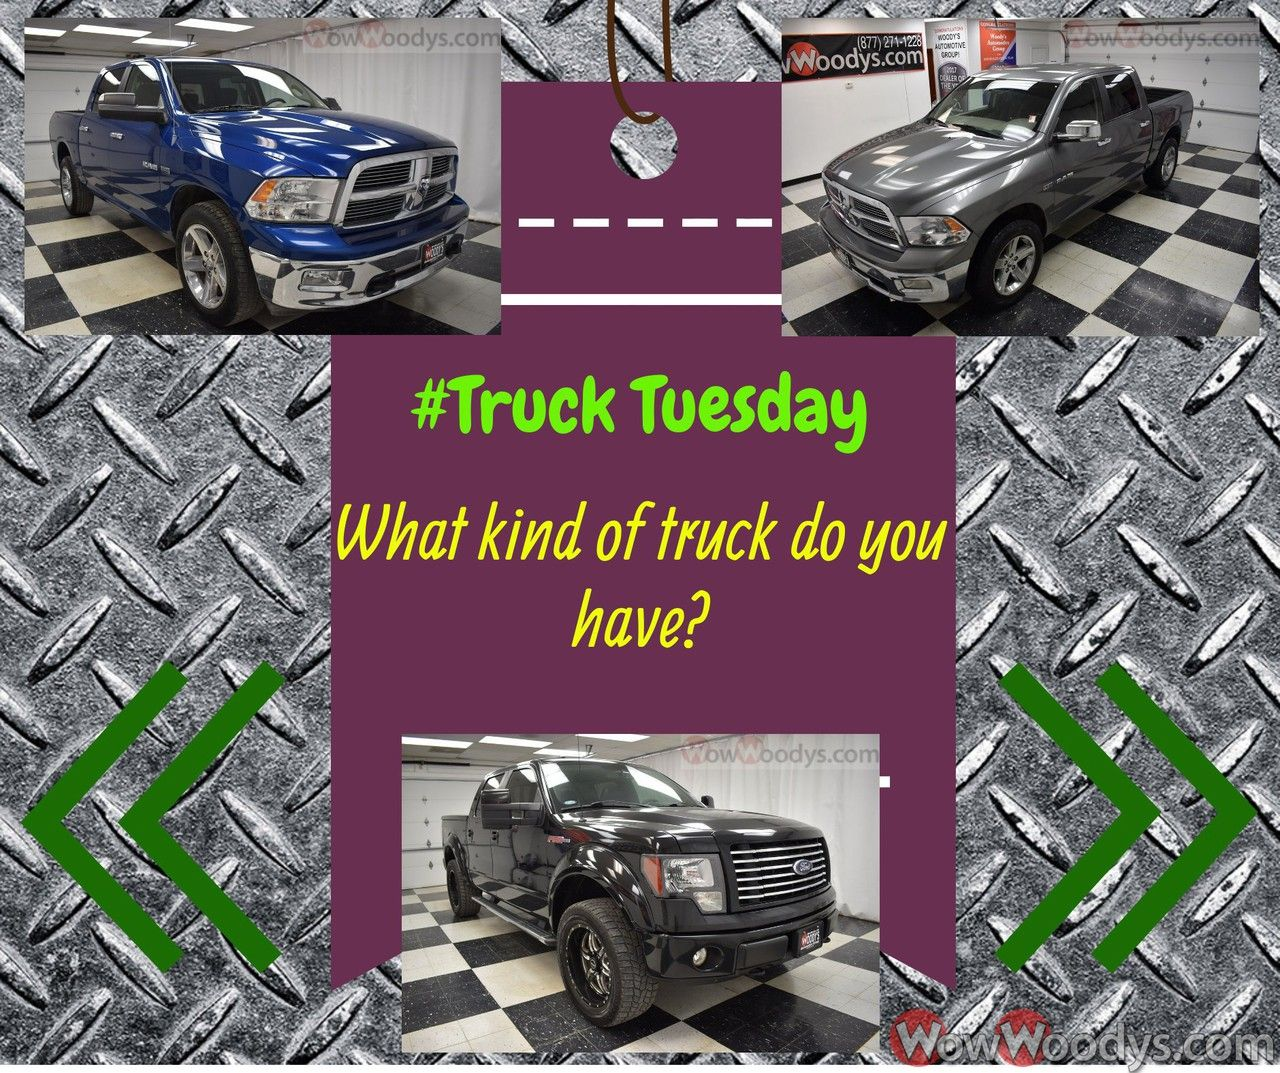 TruckTuesday Ram Dodge Ford GMC Chevy What kind of